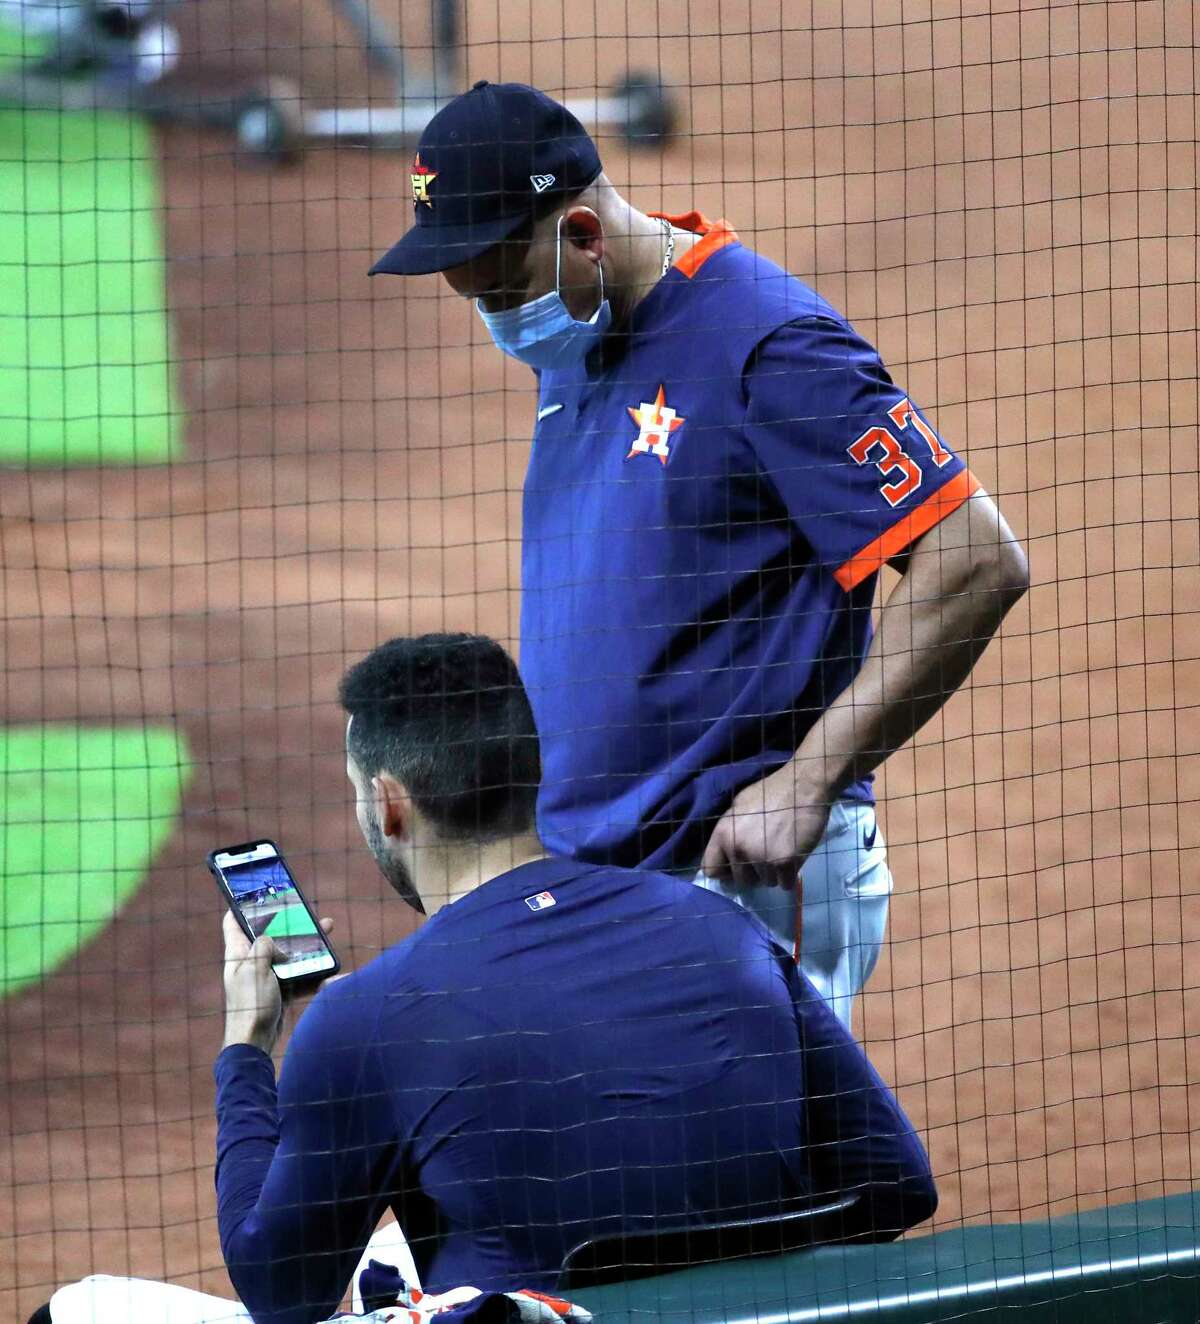 Houston Astros shortstop Carlos Correa looks at hitting coach Alex Cintron's video on his phone during the Astros summer camp at Minute Maid Park, Wednesday, July 15, 2020, in Houston.